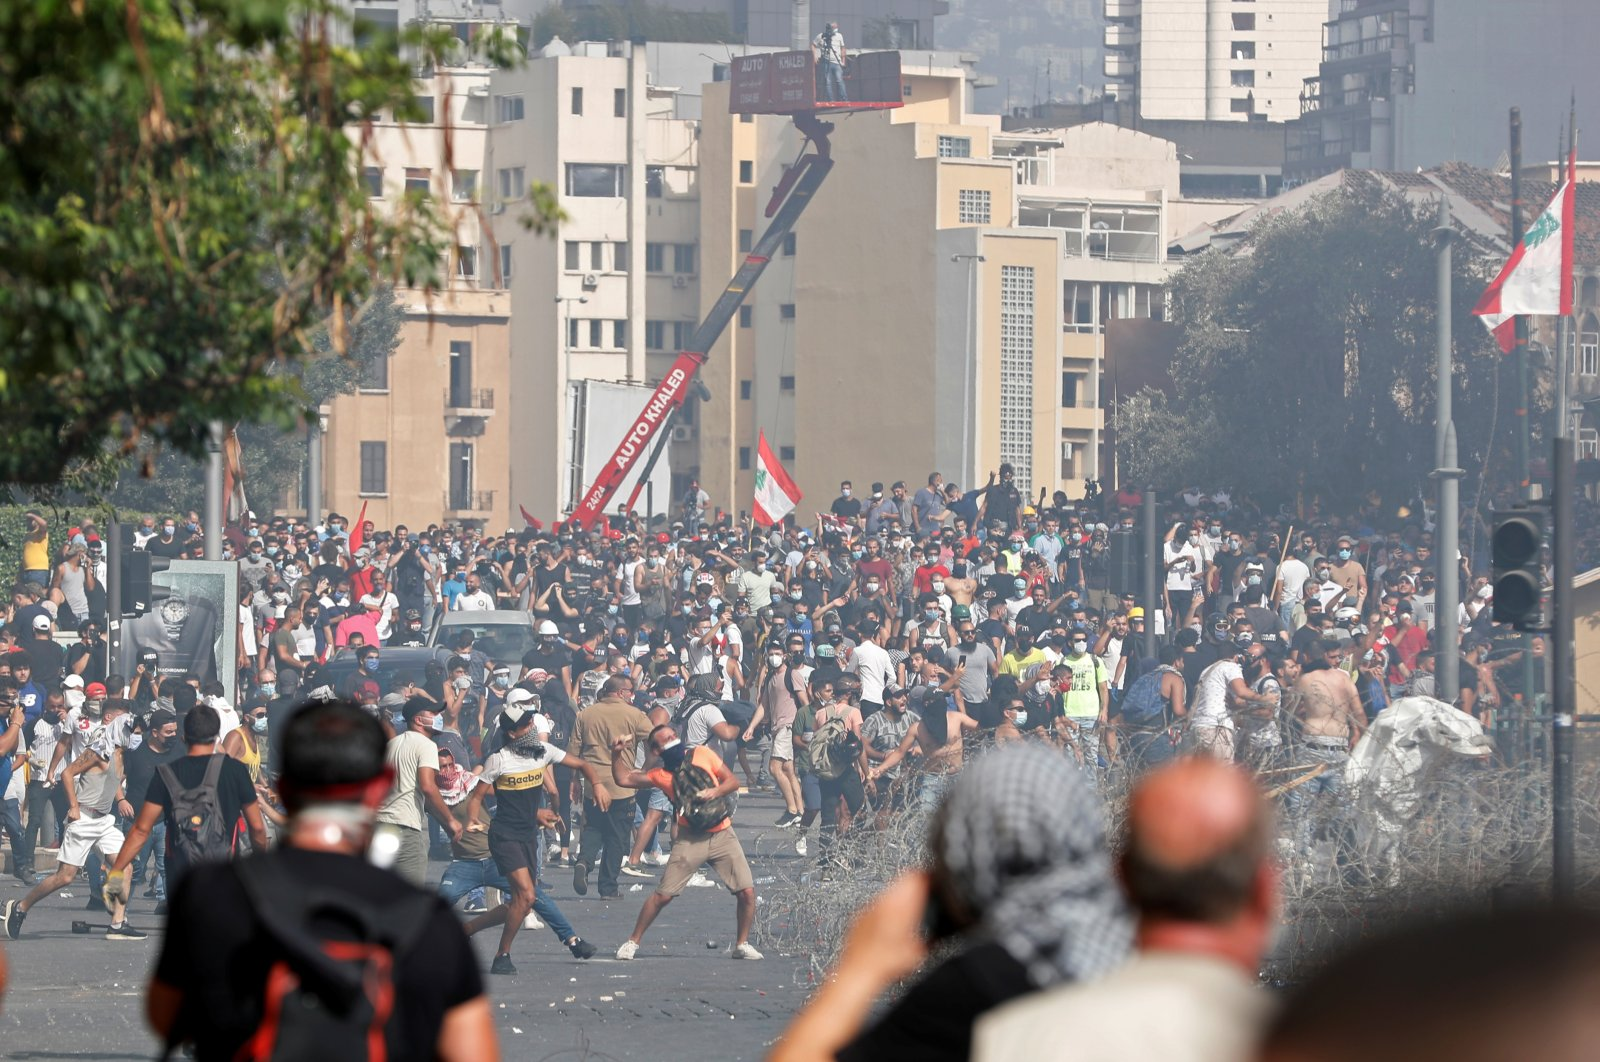 Demonstrators throw stones during a protest as they try to break through a barrier to get to the parliament building following Tuesday's blast, in Beirut, Lebanon August 8, 2020. (REUTERS Photo)